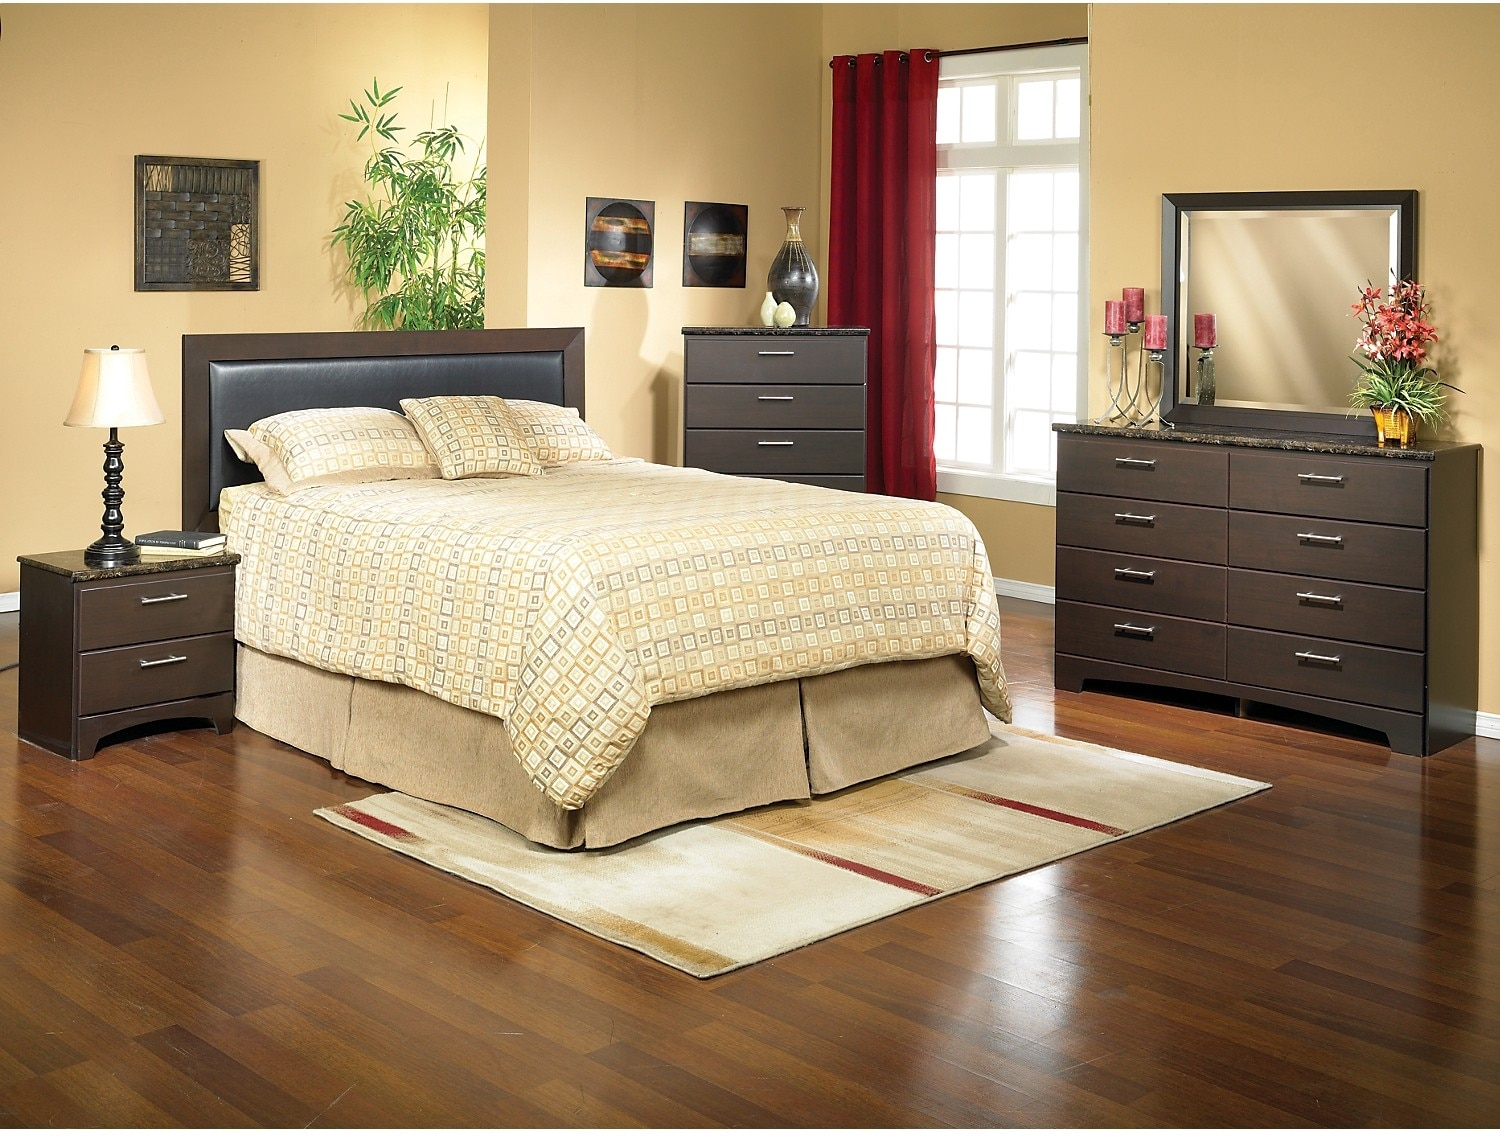 Bedroom Furniture - Oxford 5-Piece Queen Bedroom Package